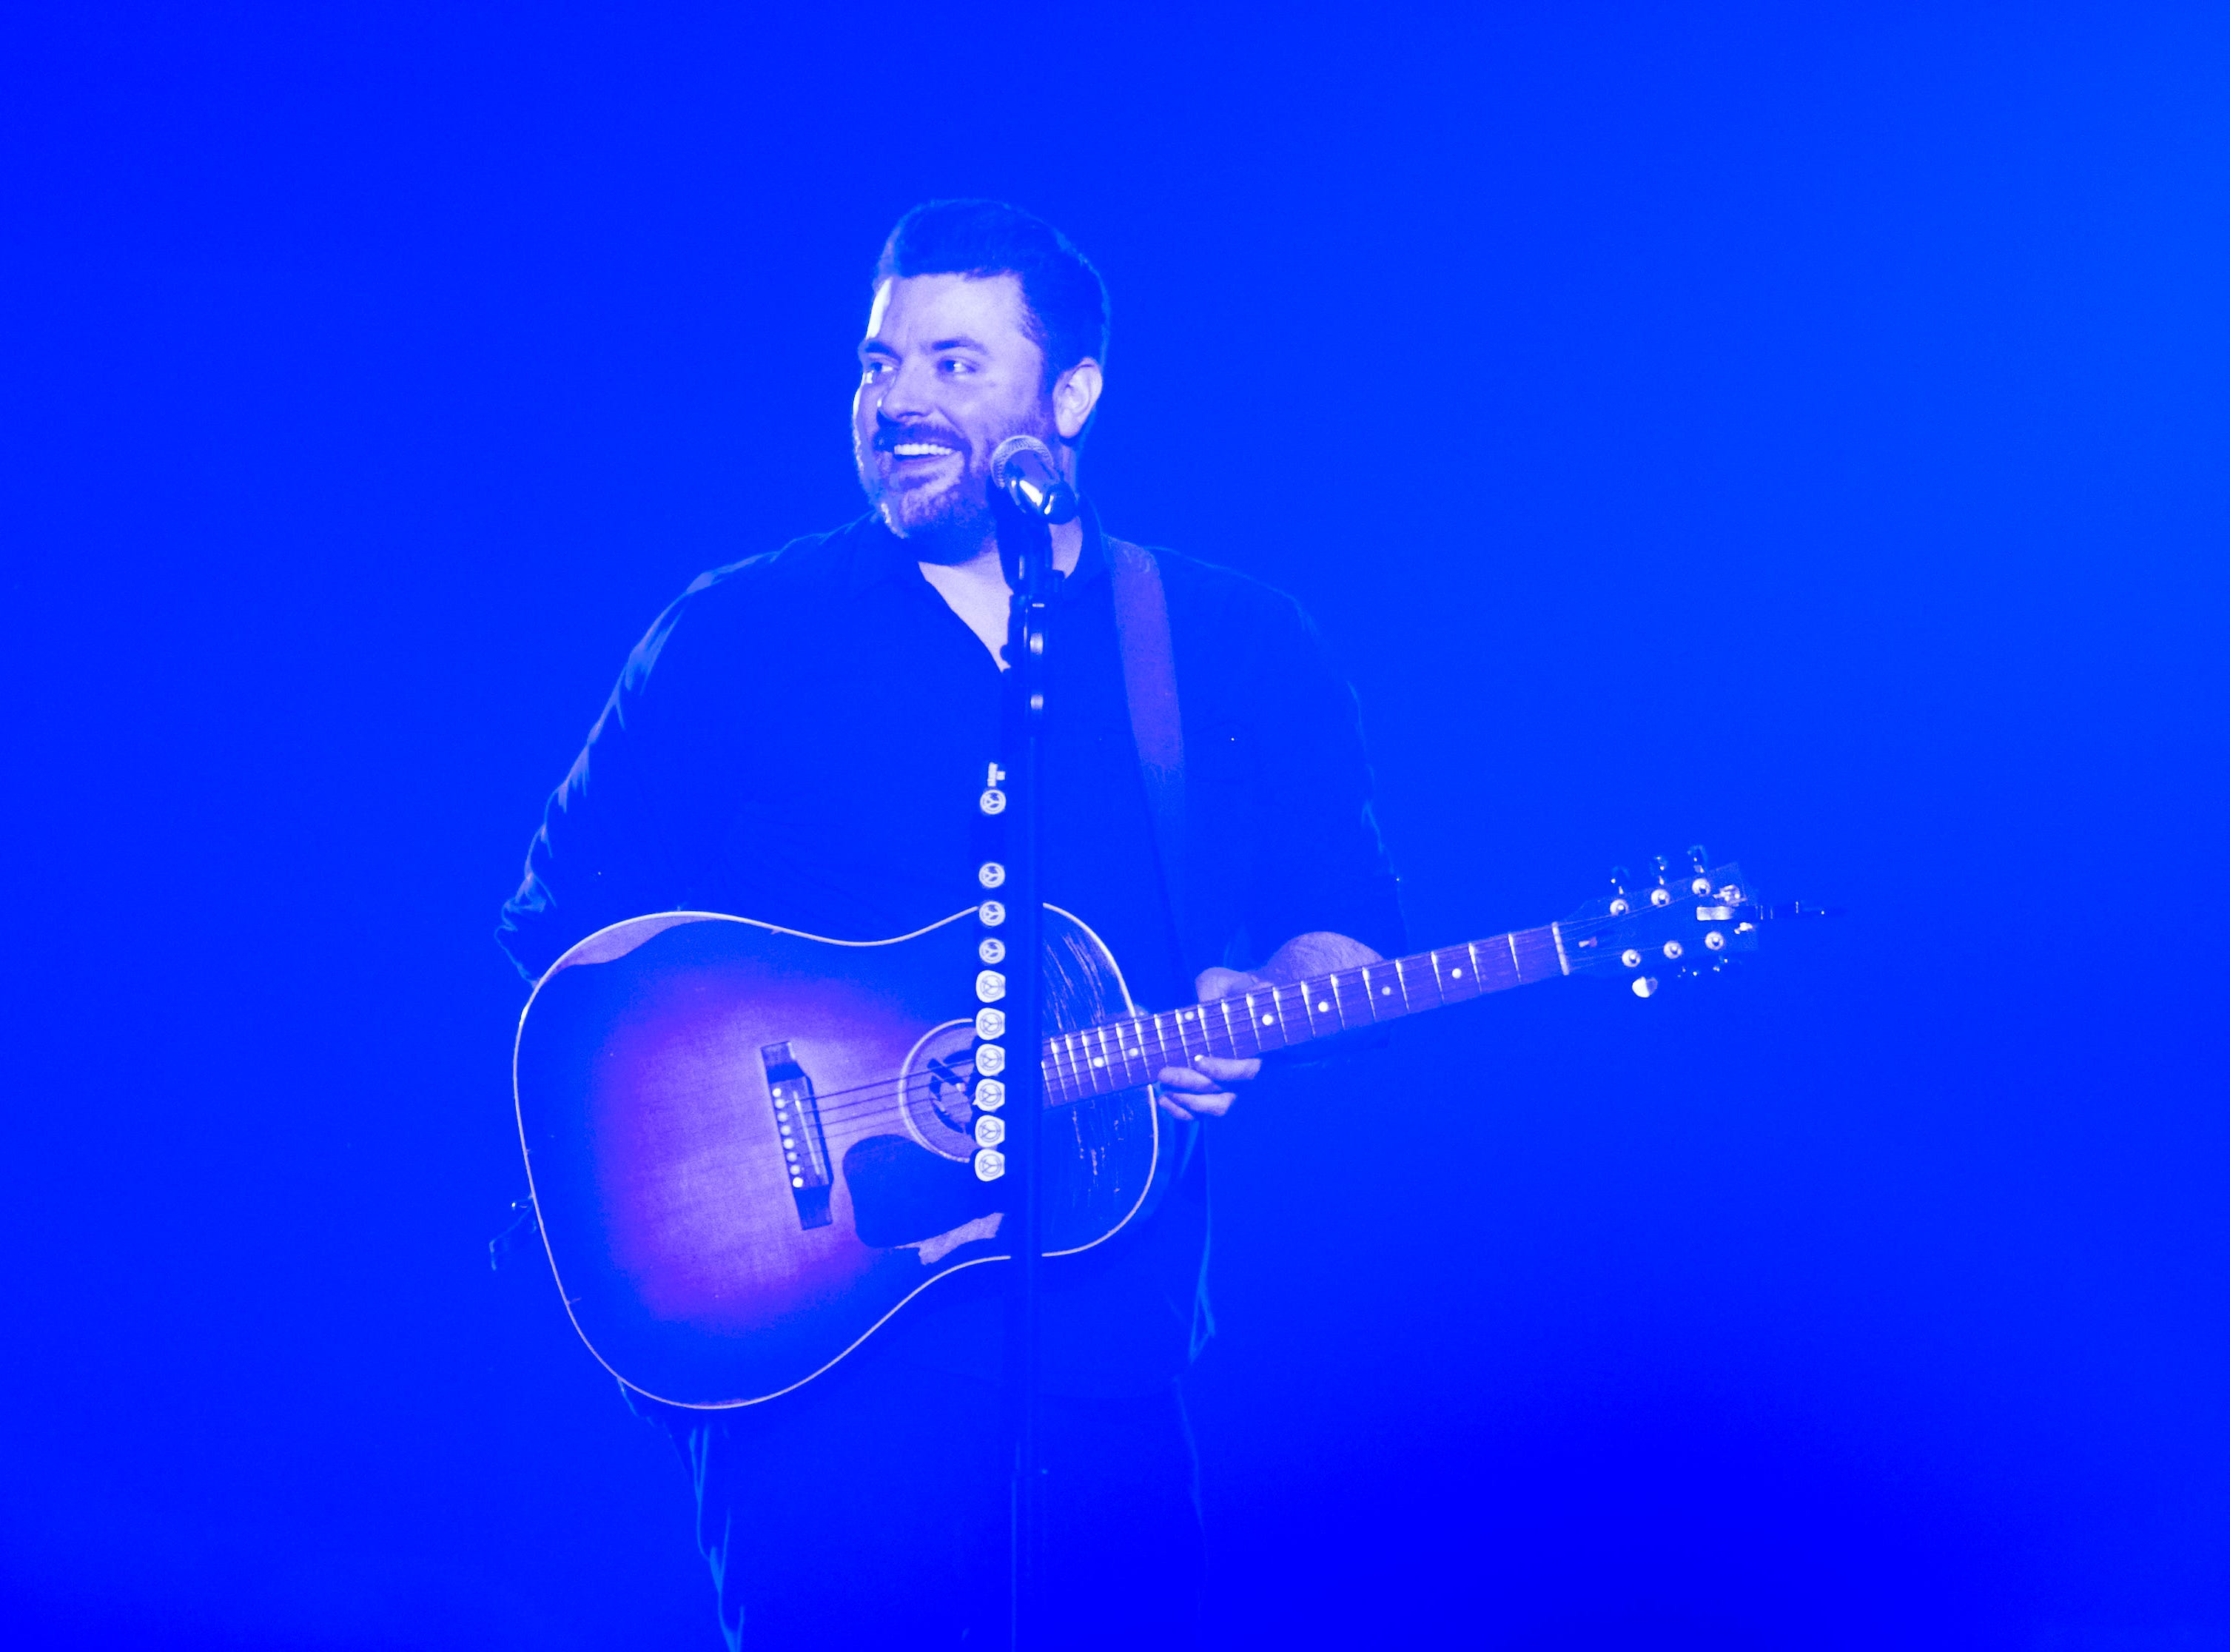 Chris Young performs at Thompson-Boling Arena Thursday Nov. 29, 2018. Morgan Evans and Dan + Shay opened for Young.